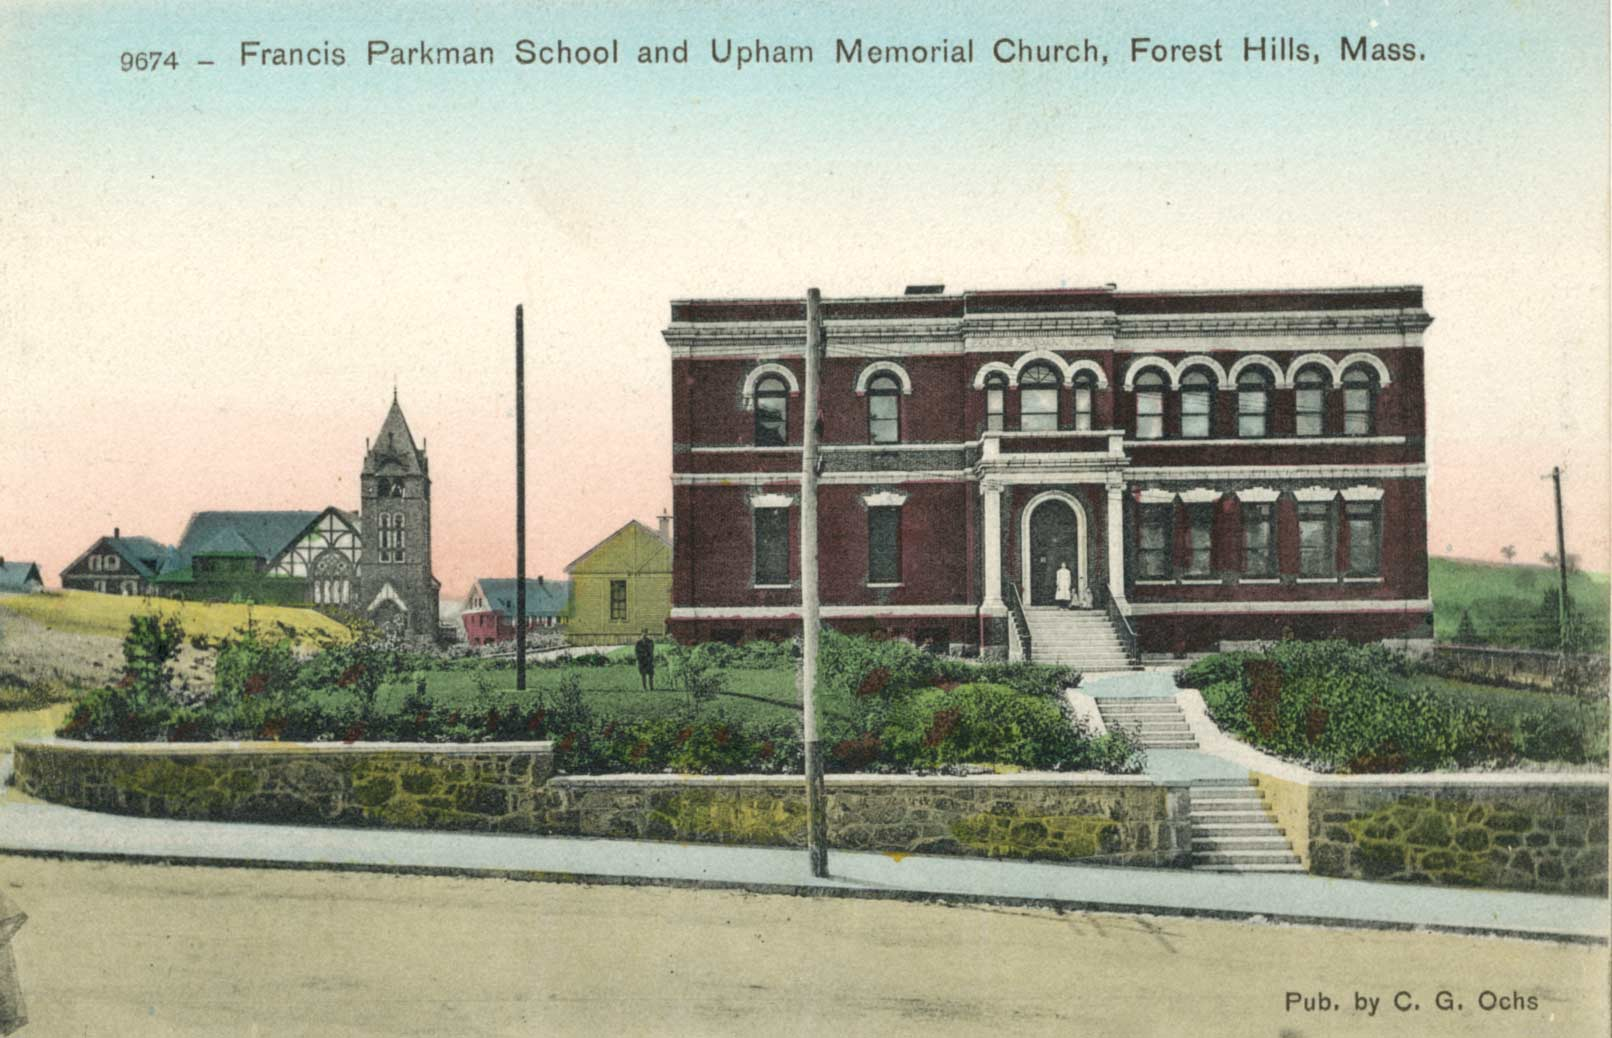 The Parkman School with Upham Memorial Church in the background. Scanned from a postcard donated by Annie Finnegan, November 2007.